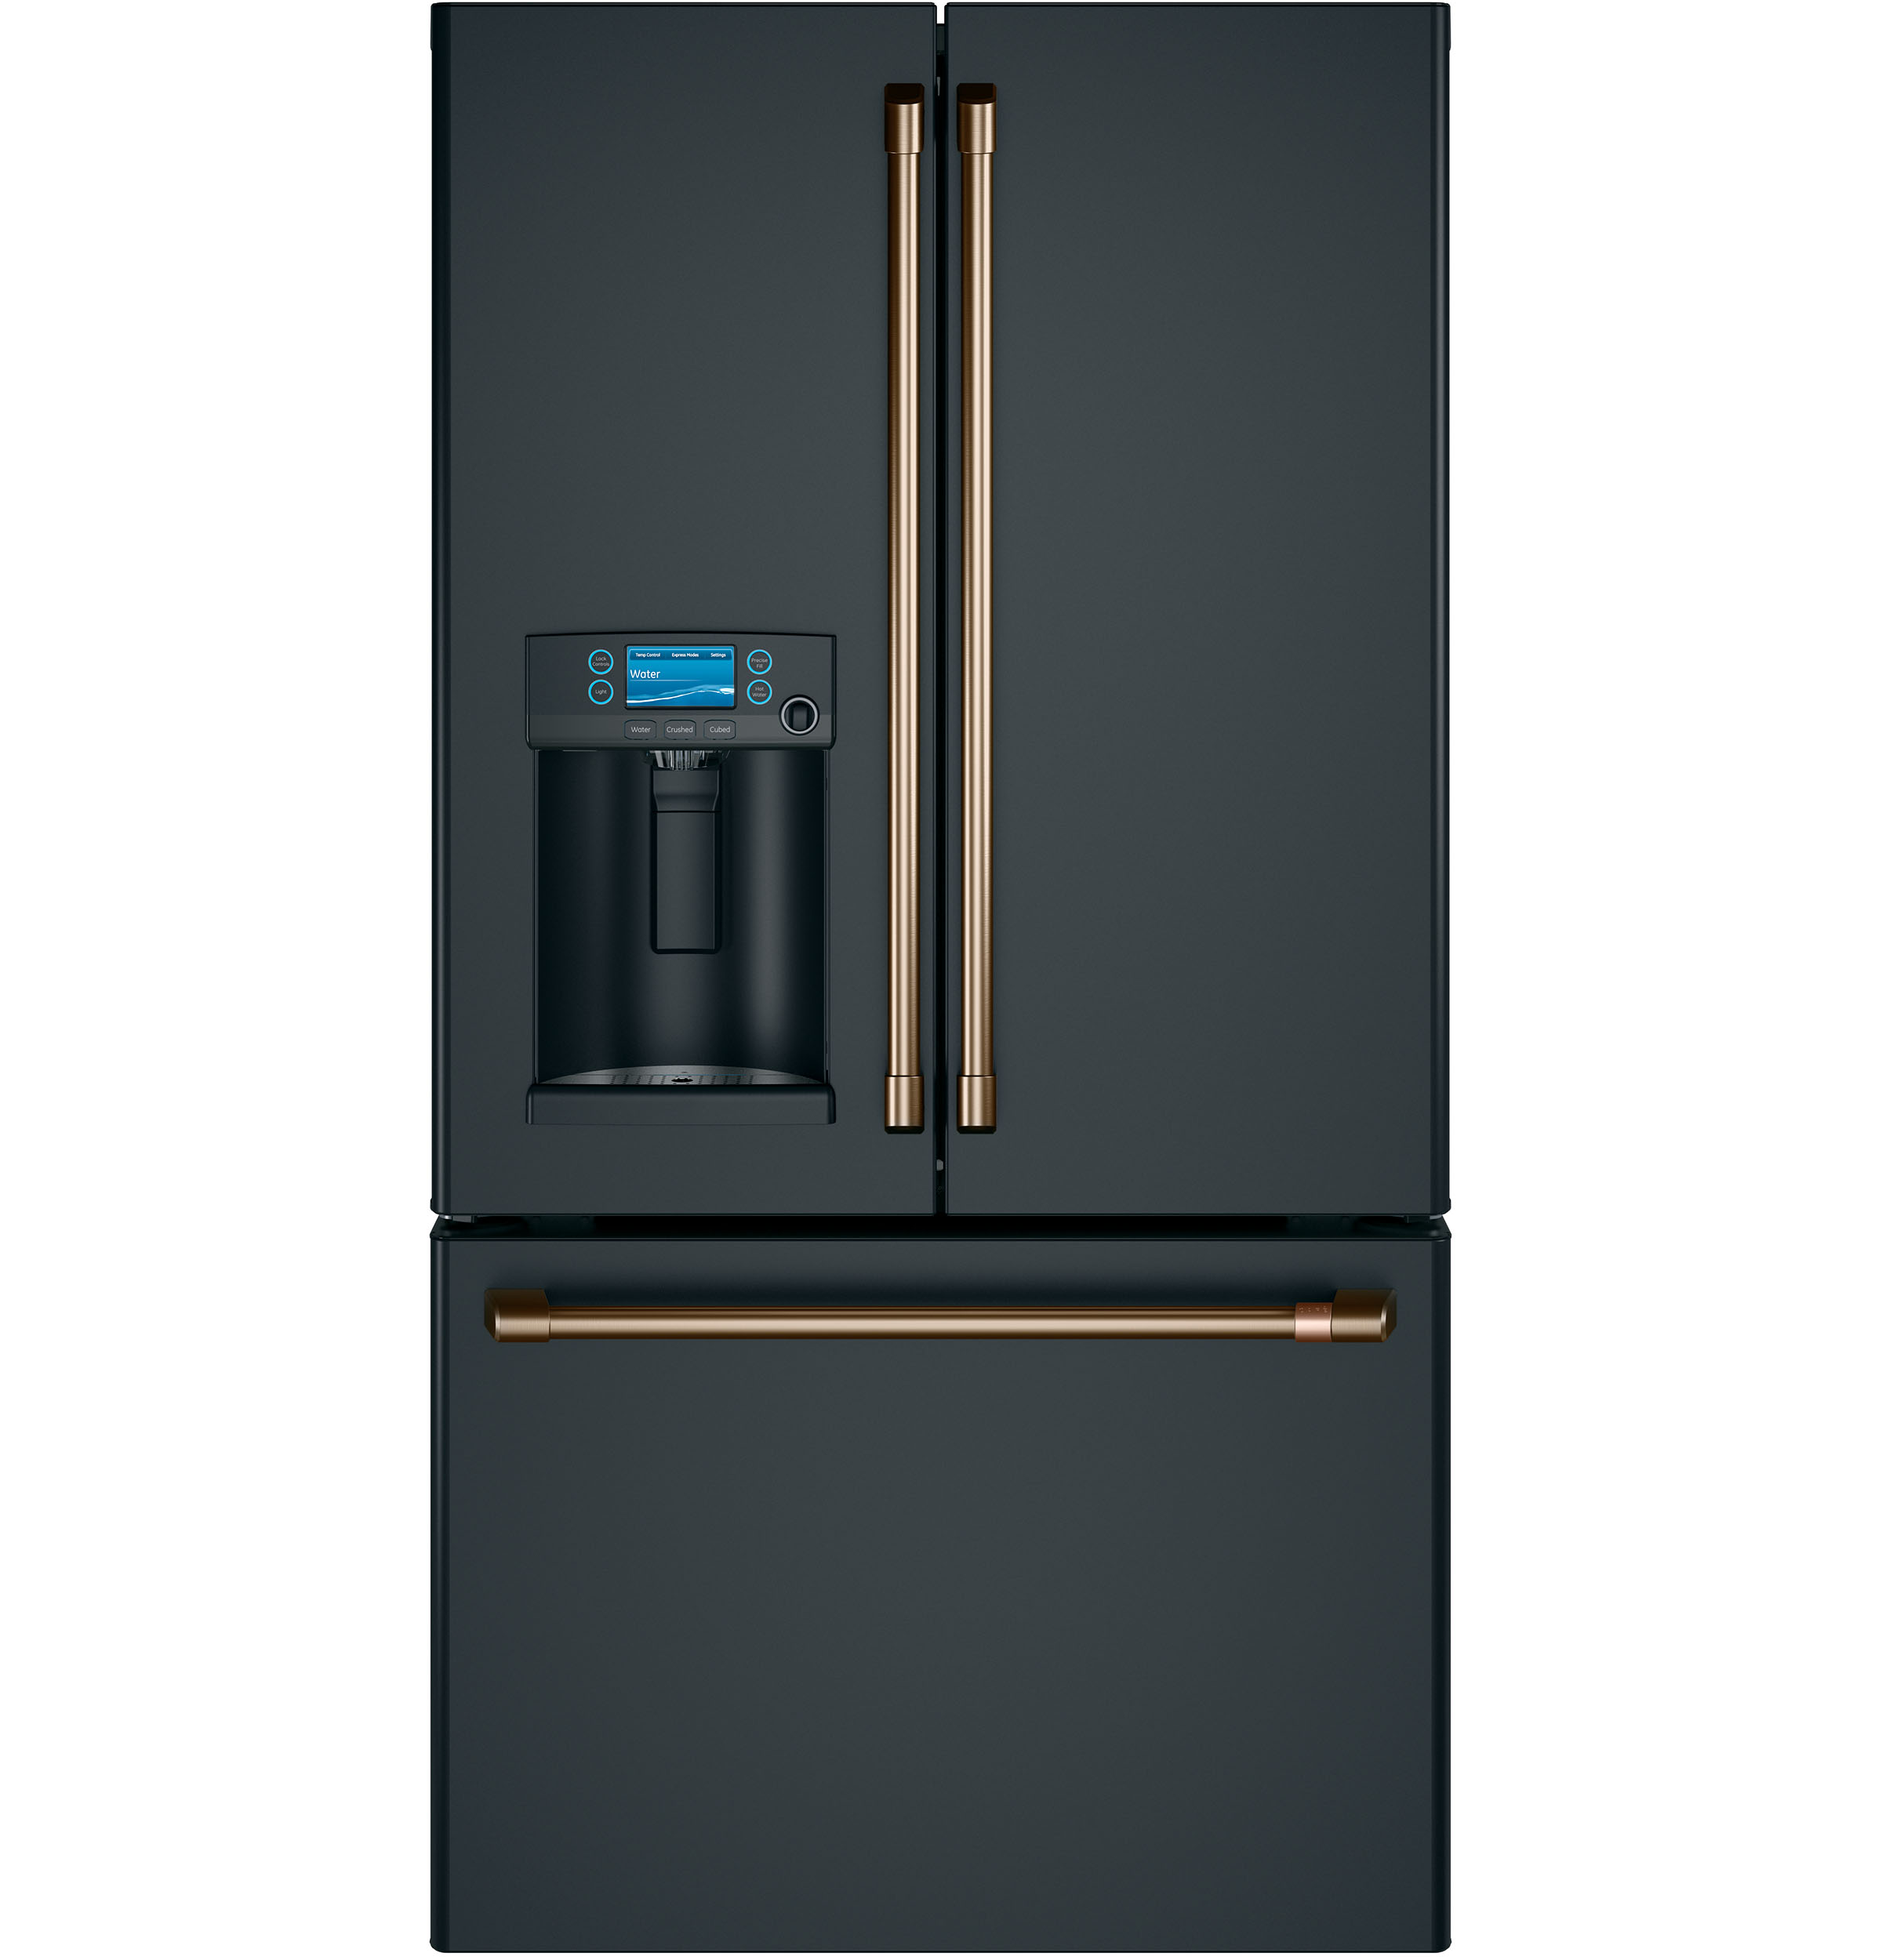 Model: CFE28TP3MD1   Café™ ENERGY STAR® 27.8 Cu. Ft. French-Door Refrigerator with Hot Water Dispenser